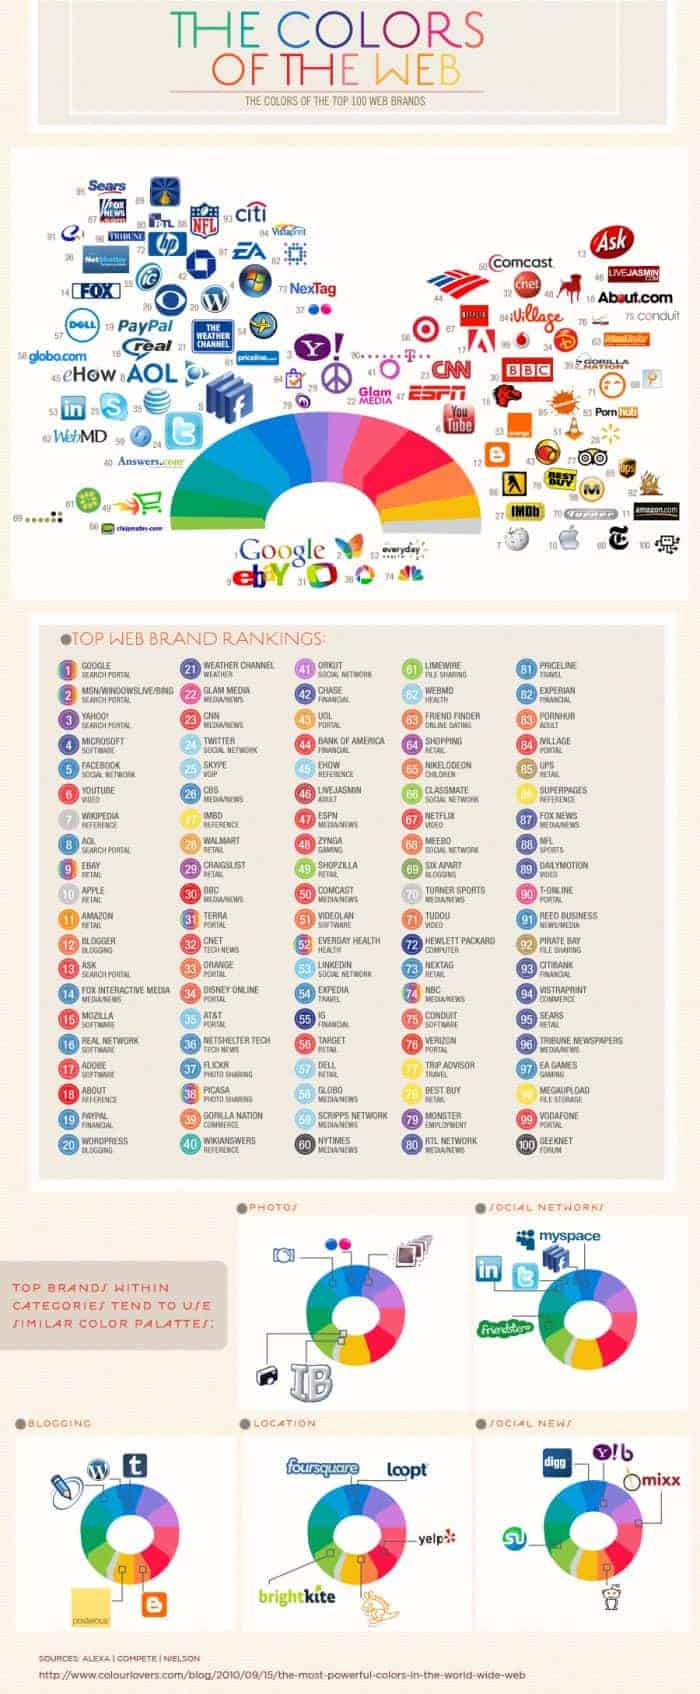 Infographic-The-Colors-Of-The-Top-100-Web-Brands